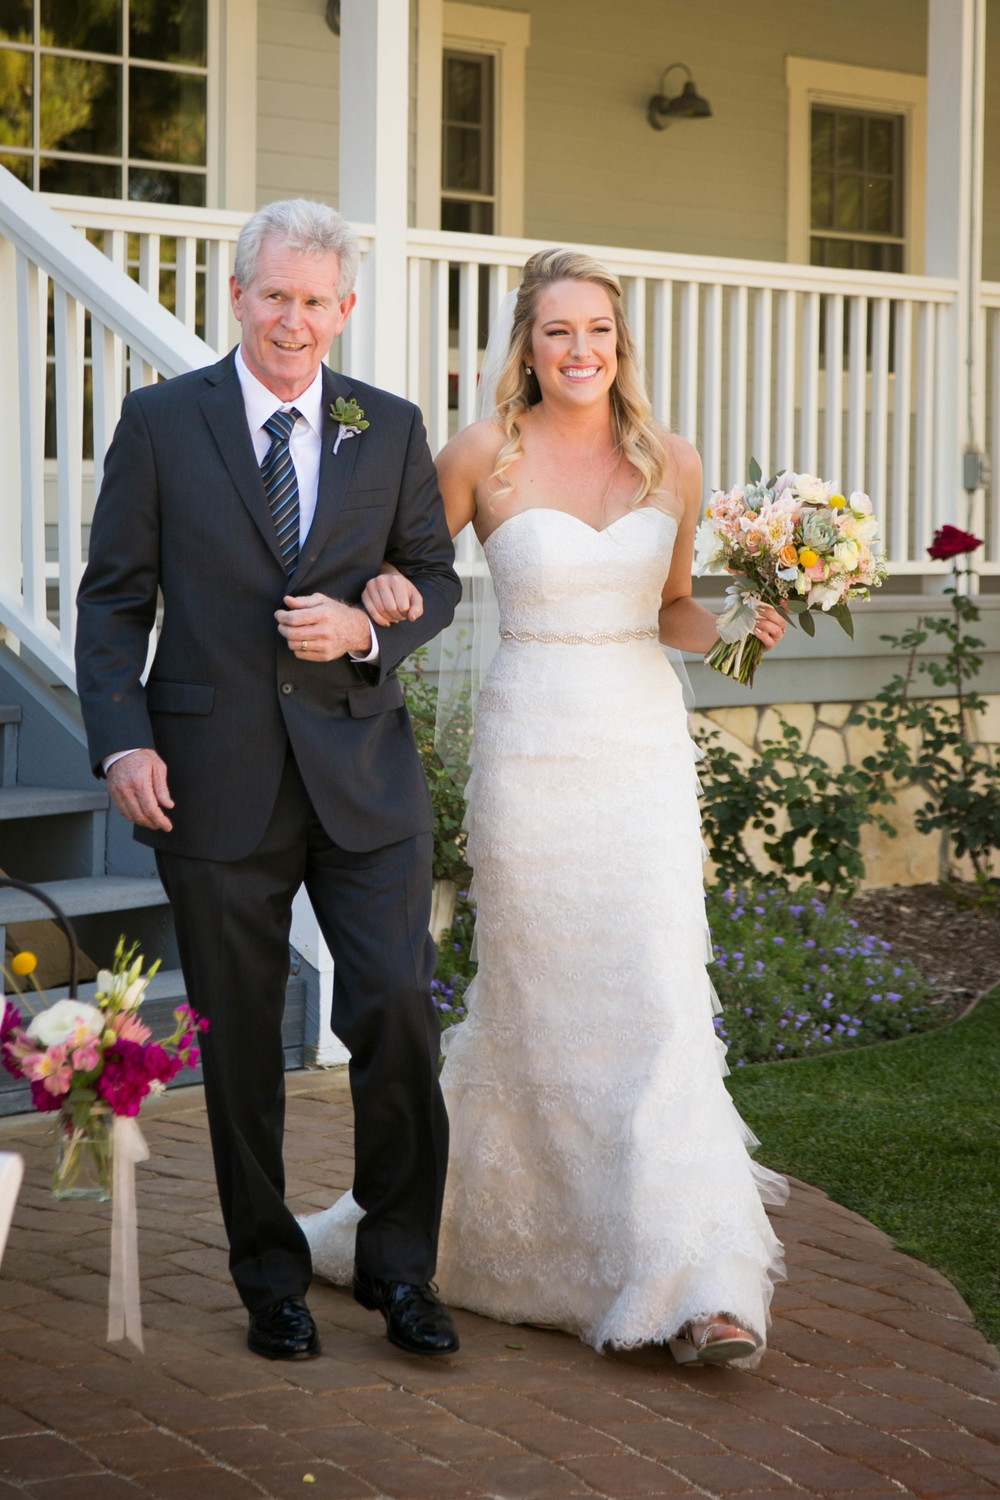 Paso Robles Vineyard Wedding138.jpg